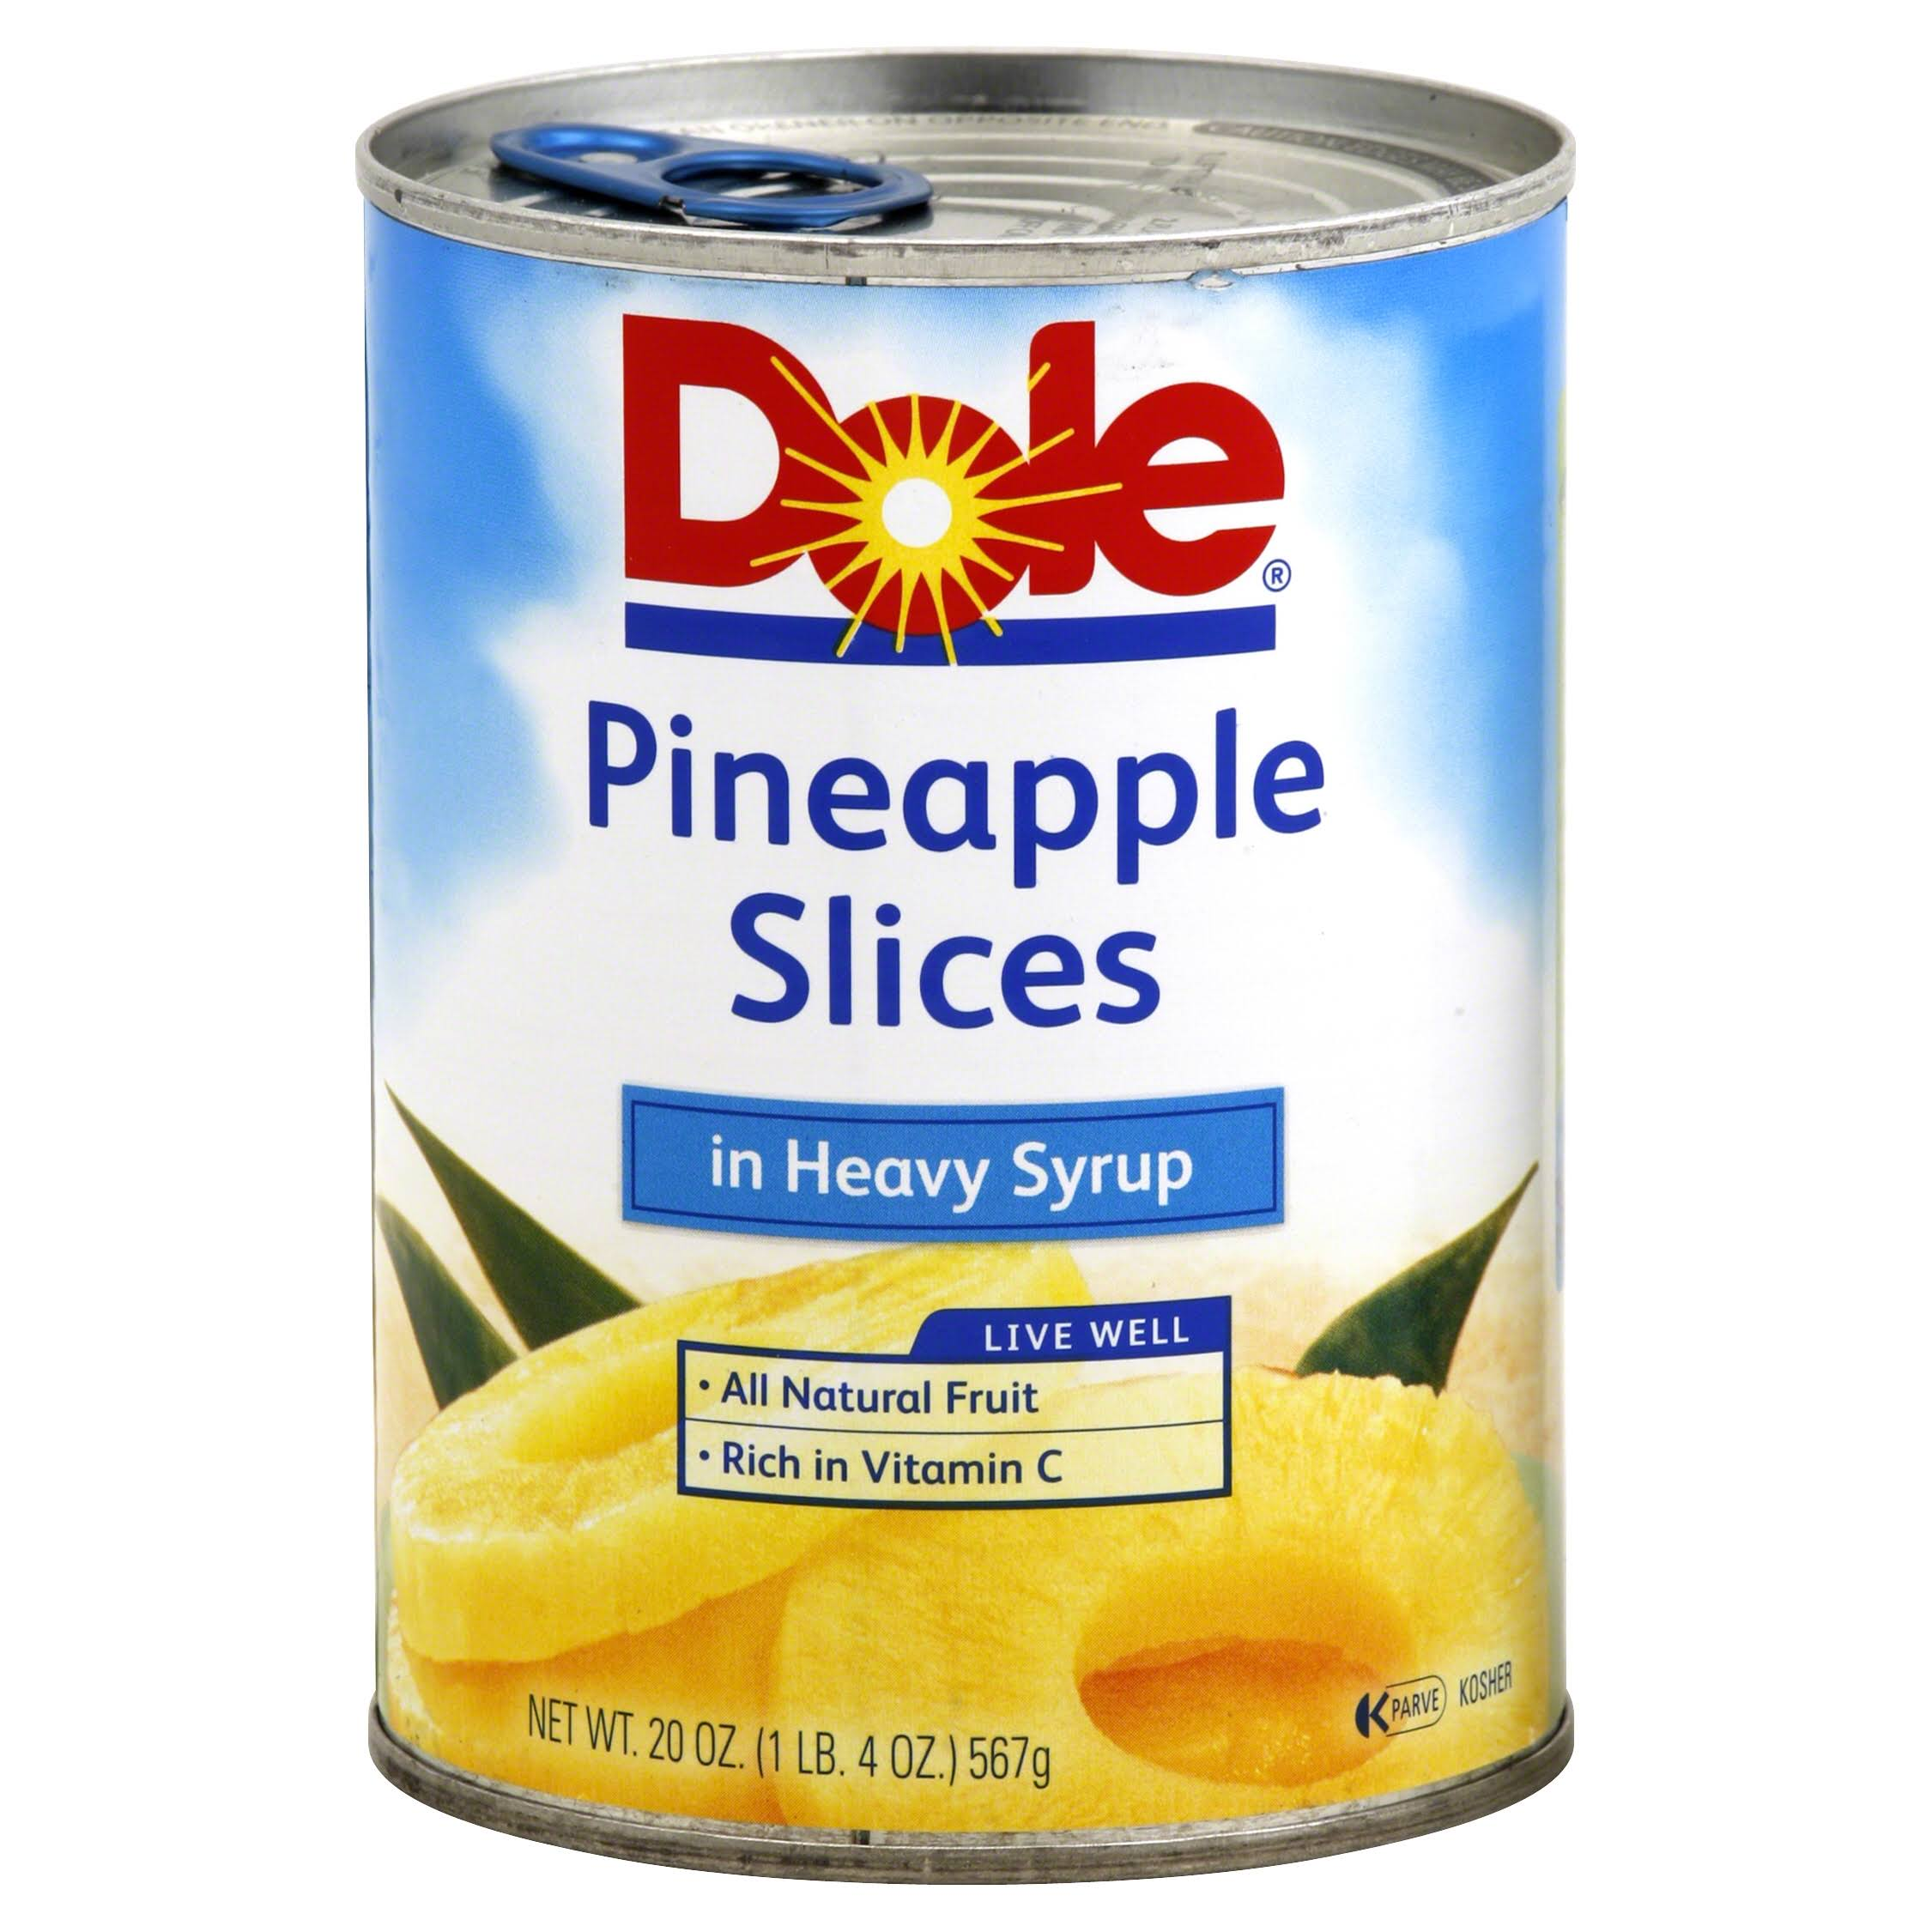 Dole Pineapple Slices - Heavy Syrup, 20oz